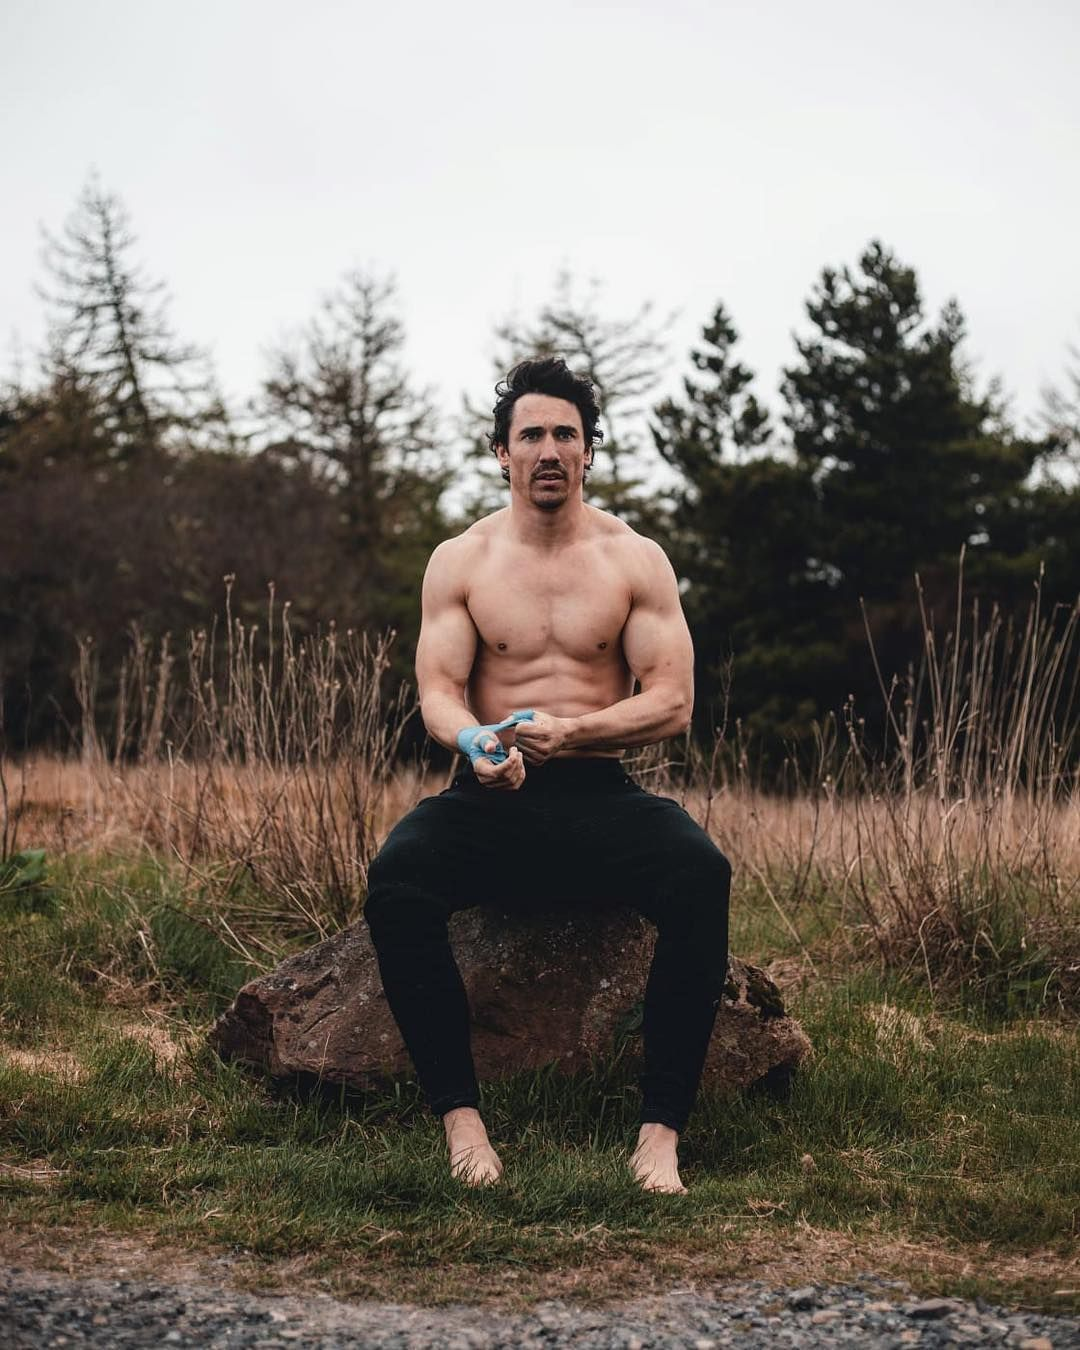 Image may contain: Made in Chelsea cast now, Made in Chelsea, cast, then, now, before, after, iconic, original, Josh Patterson, JP, YouTube,  Outdoors, Man, Tree, Plant, Fitness, Sports, Working Out, Exercise, Sport, Person, Human